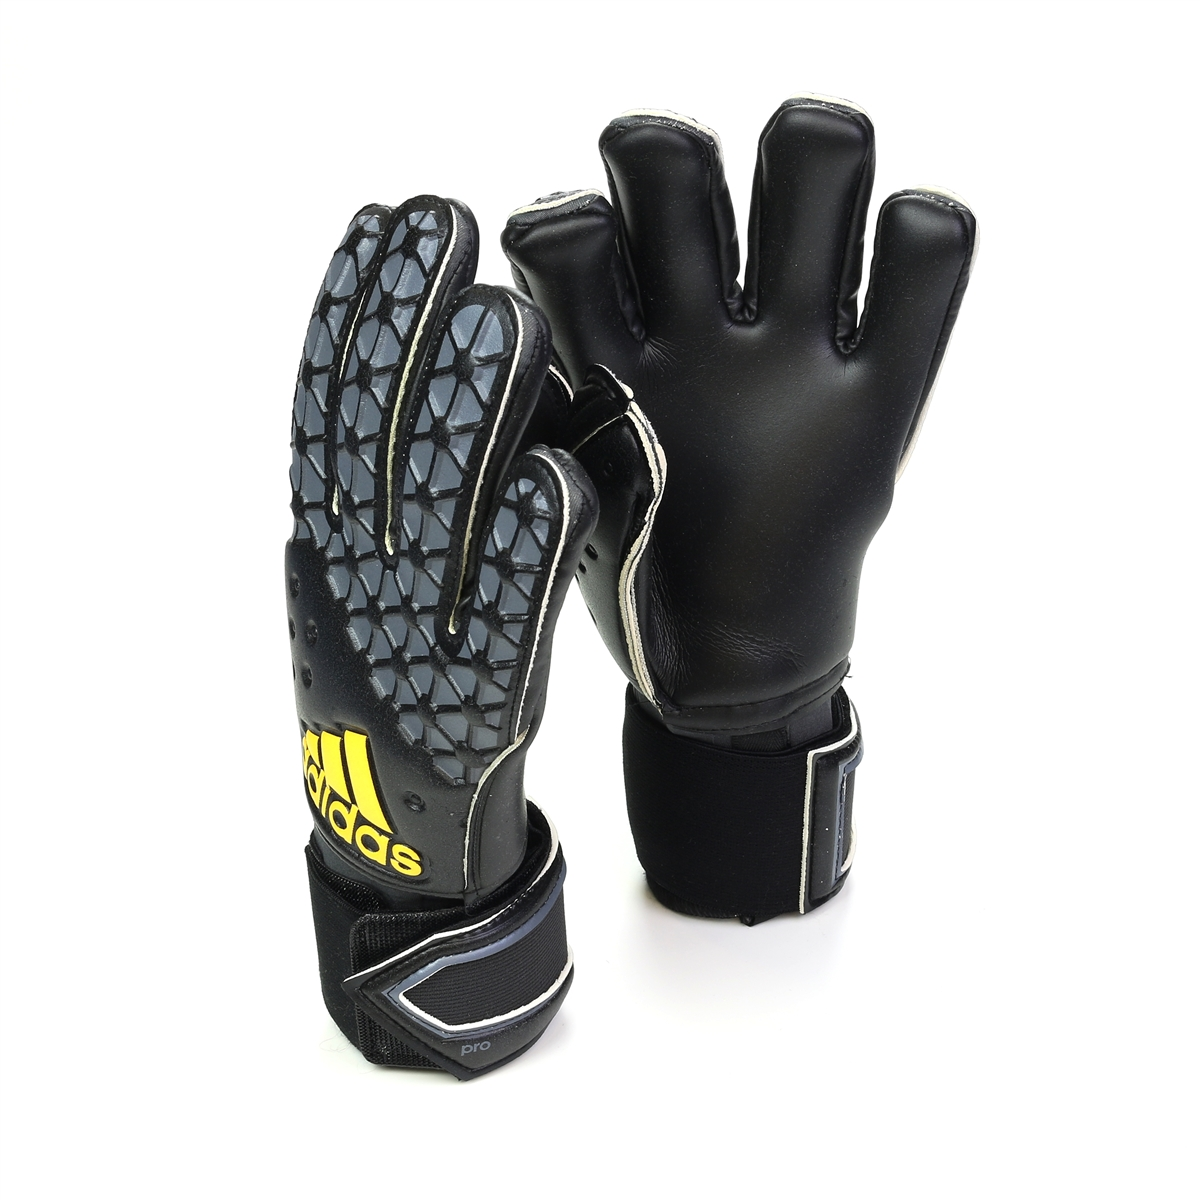 Black nike goalkeeper gloves - Adidas Ace Pro Classic Soccer Goalkeeper Gloves